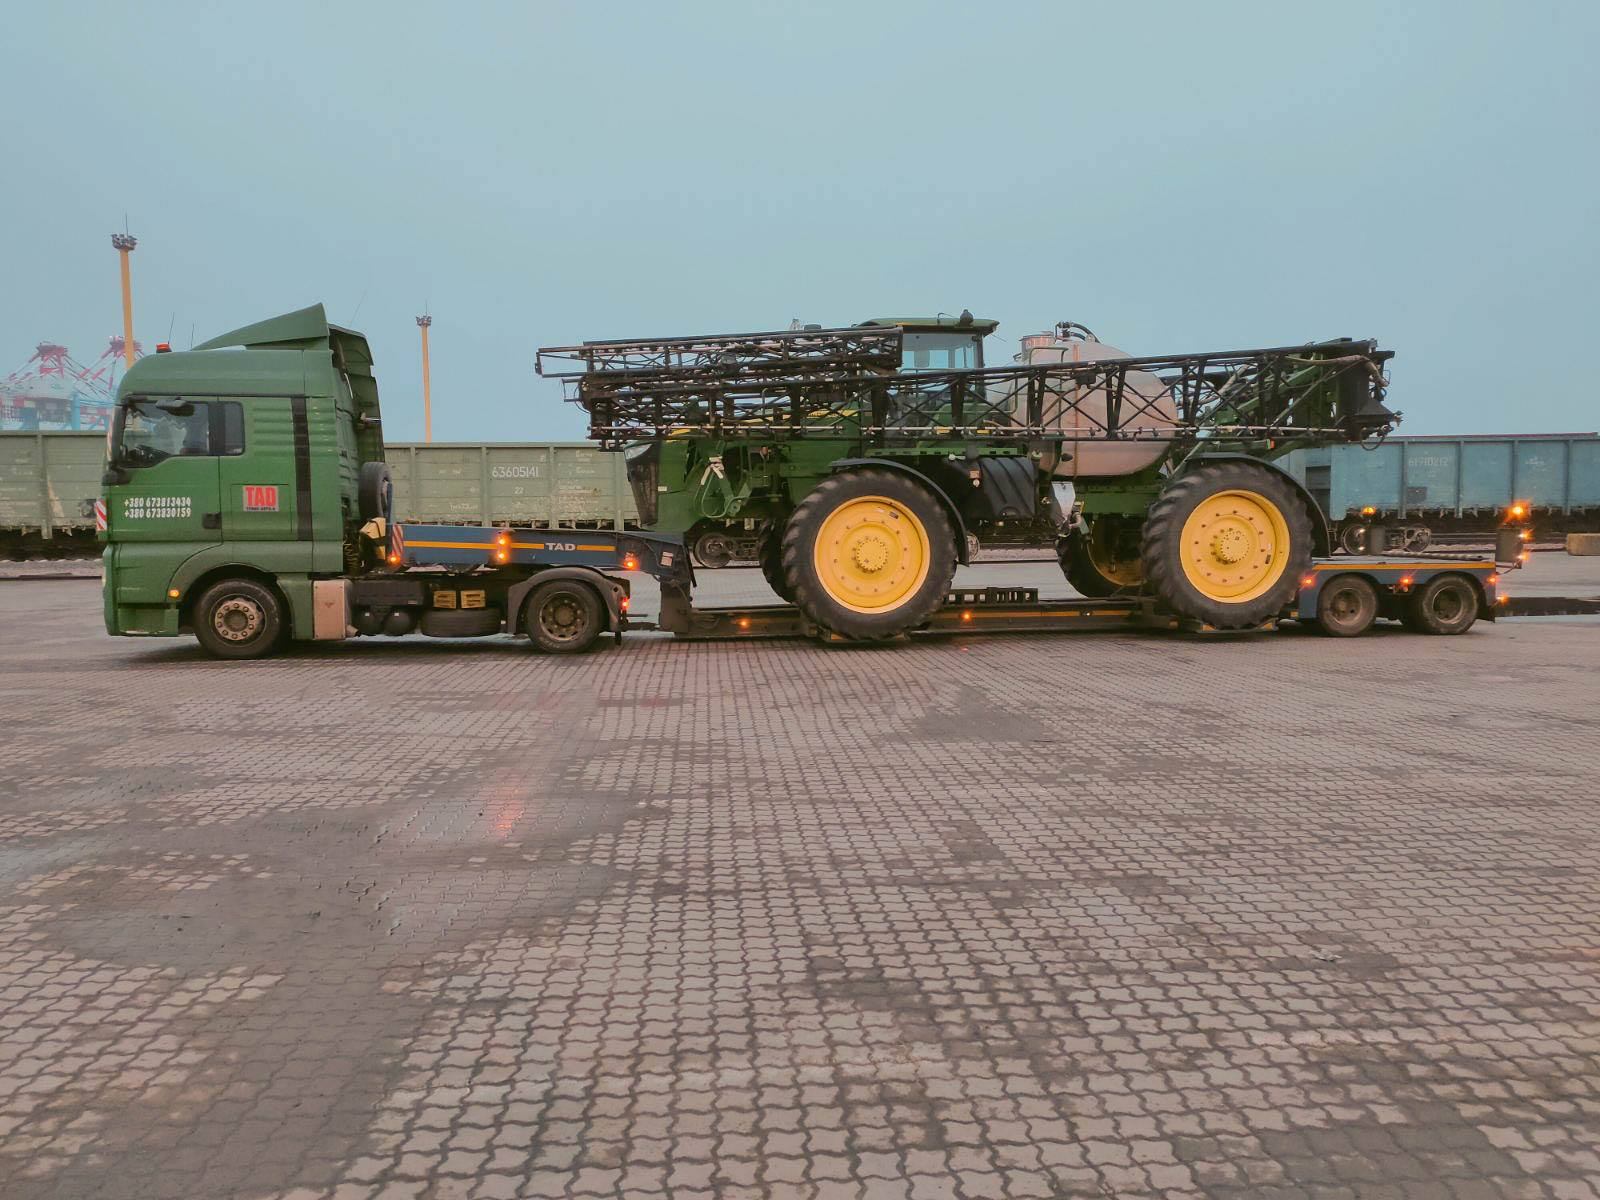 Transportation of the #JohnDeere4940 sprayer across Ukraine -2